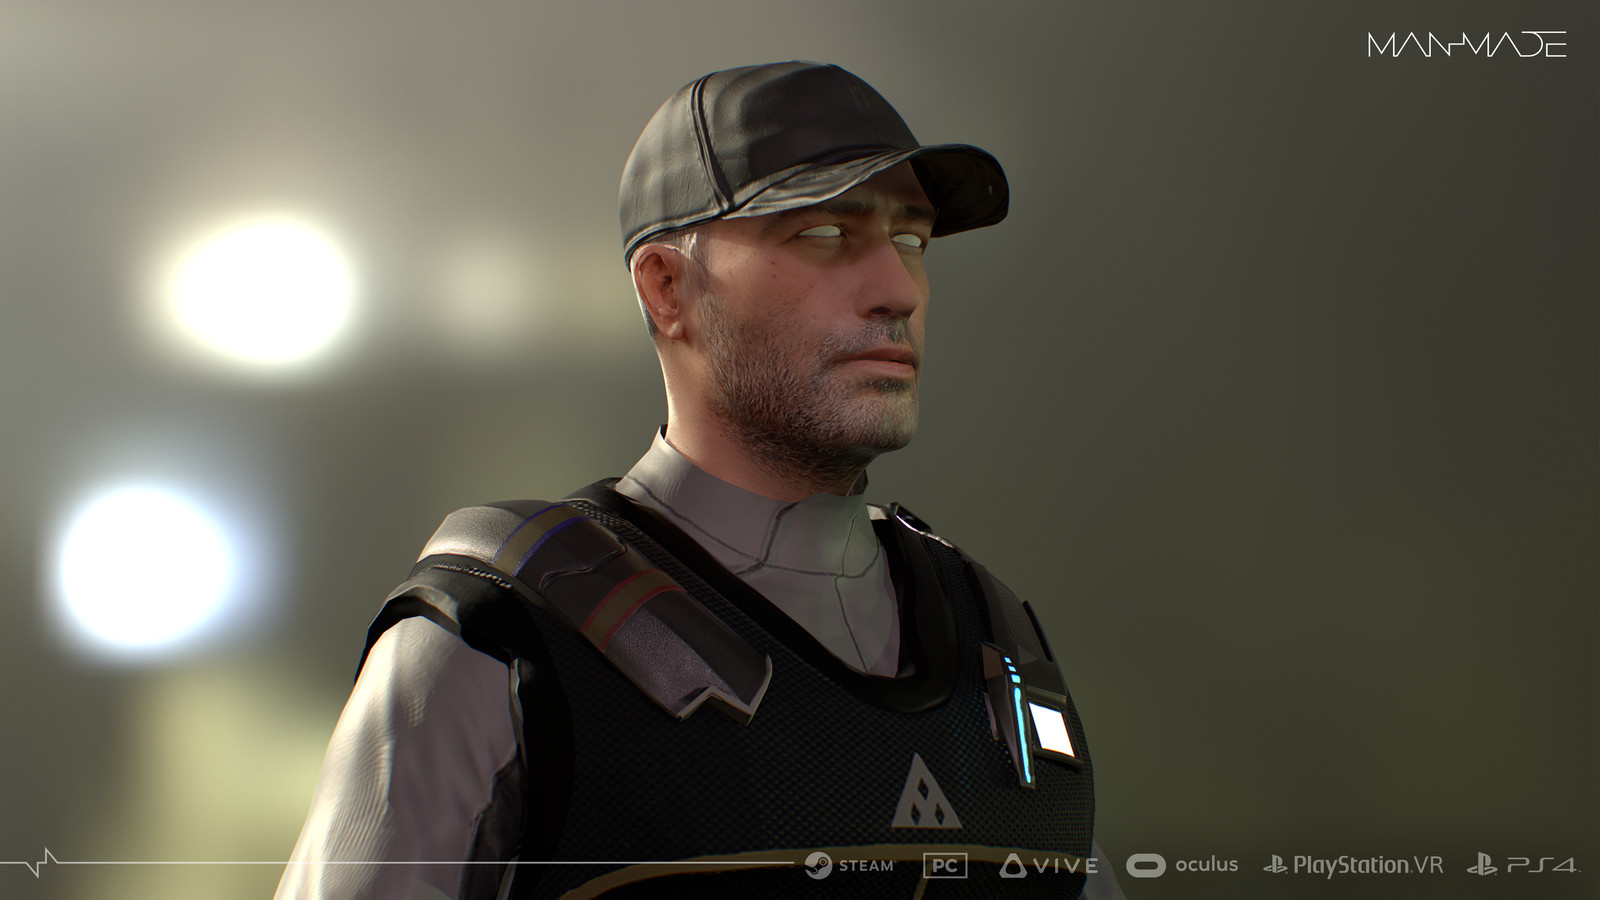 Security2 (3d Character Modeling and Texturing for ManMade: SciFi Action Adventure Game)